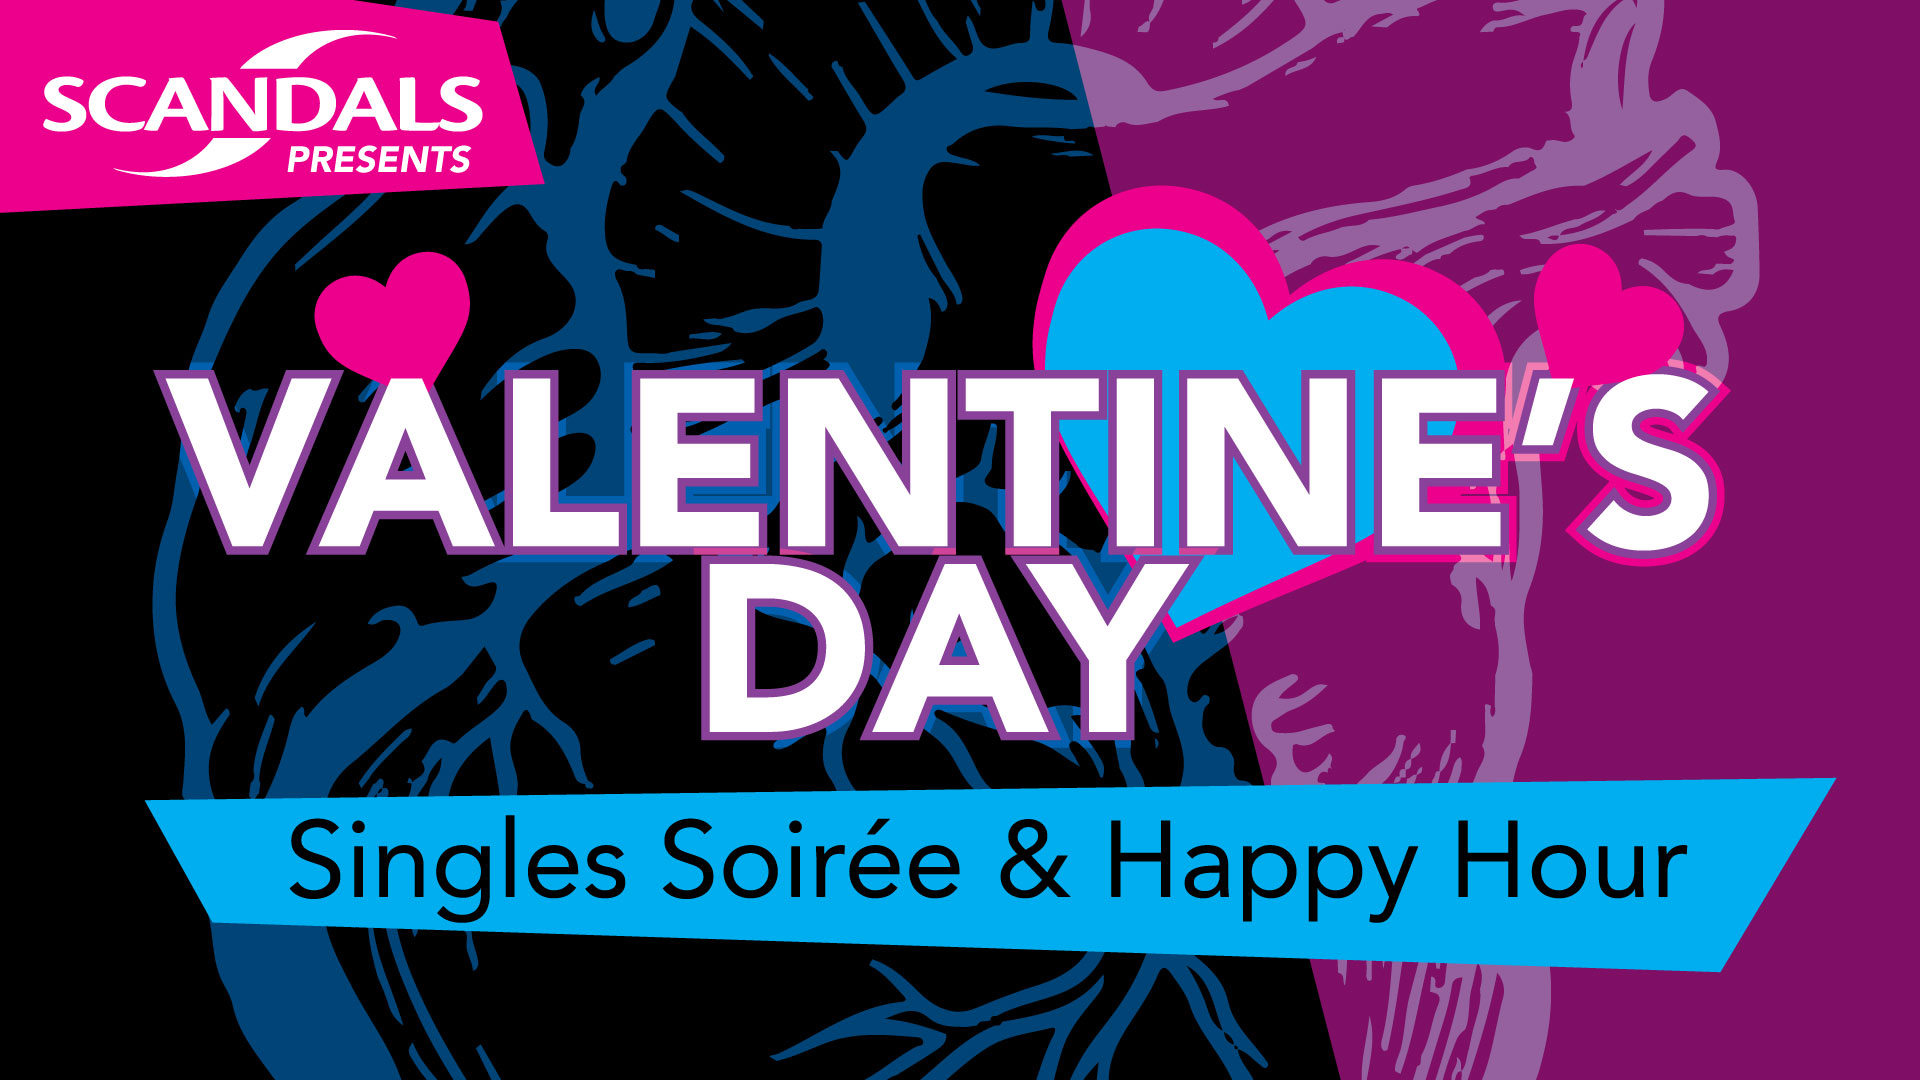 Get Off Your Phone!! Meet LIVE people!! @ Scandals for a Valentines Day, Singles Soiree & Happy Hour! Even if you don't find your Amore, you'll still have great time!!   Make sure to join the event on Facebook here!